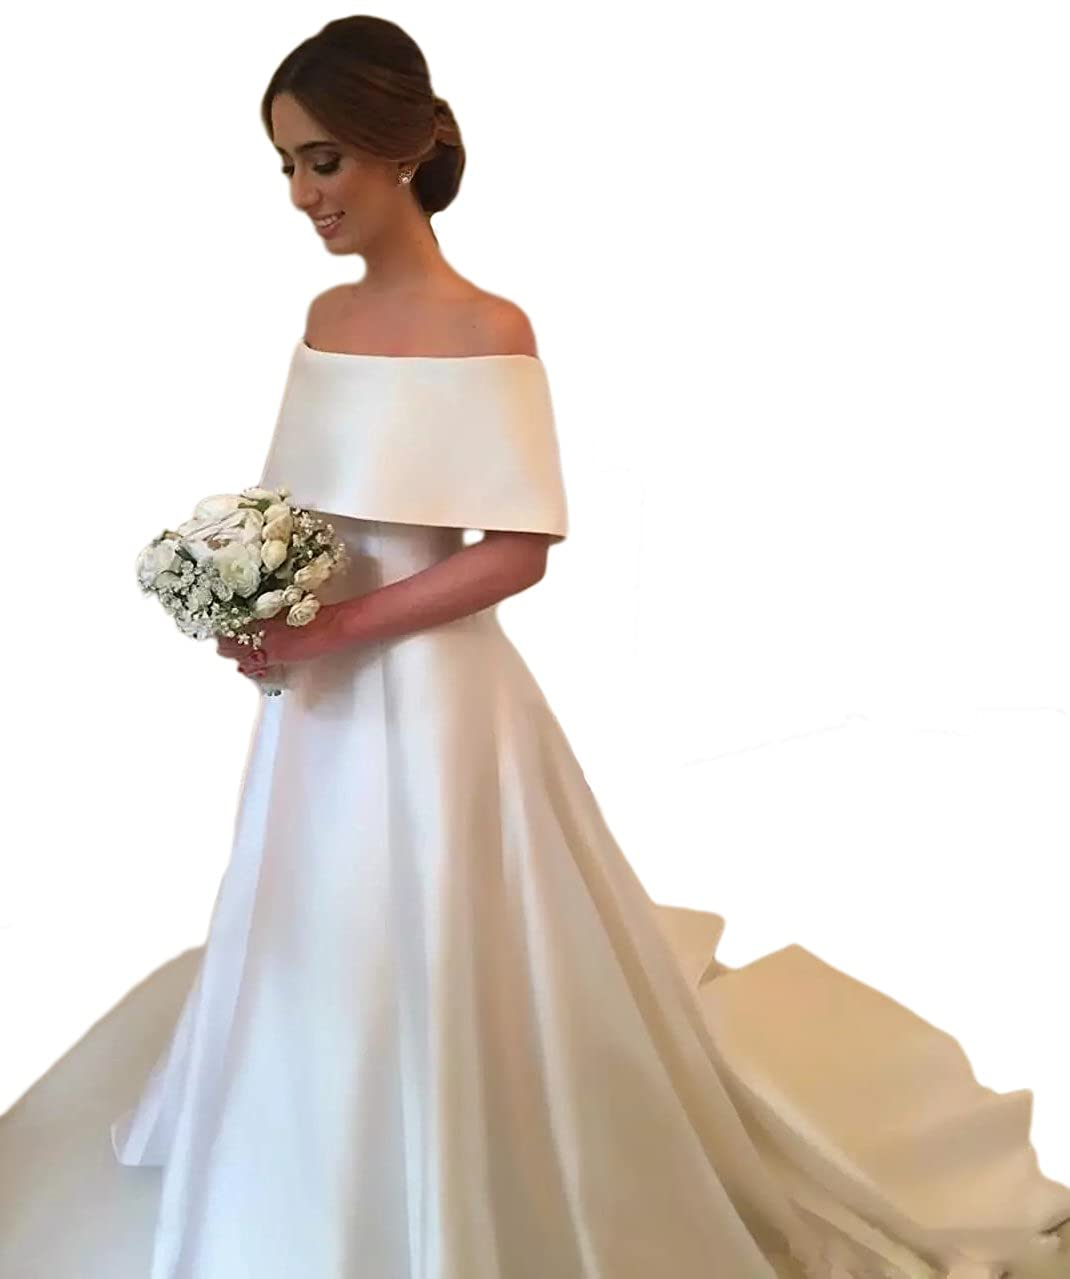 0ad21cefb22 DreHouse Women s Satin Off Shoulder A-Line Church Wedding Dresses Bridal  Gowns 2018 at Amazon Women s Clothing store